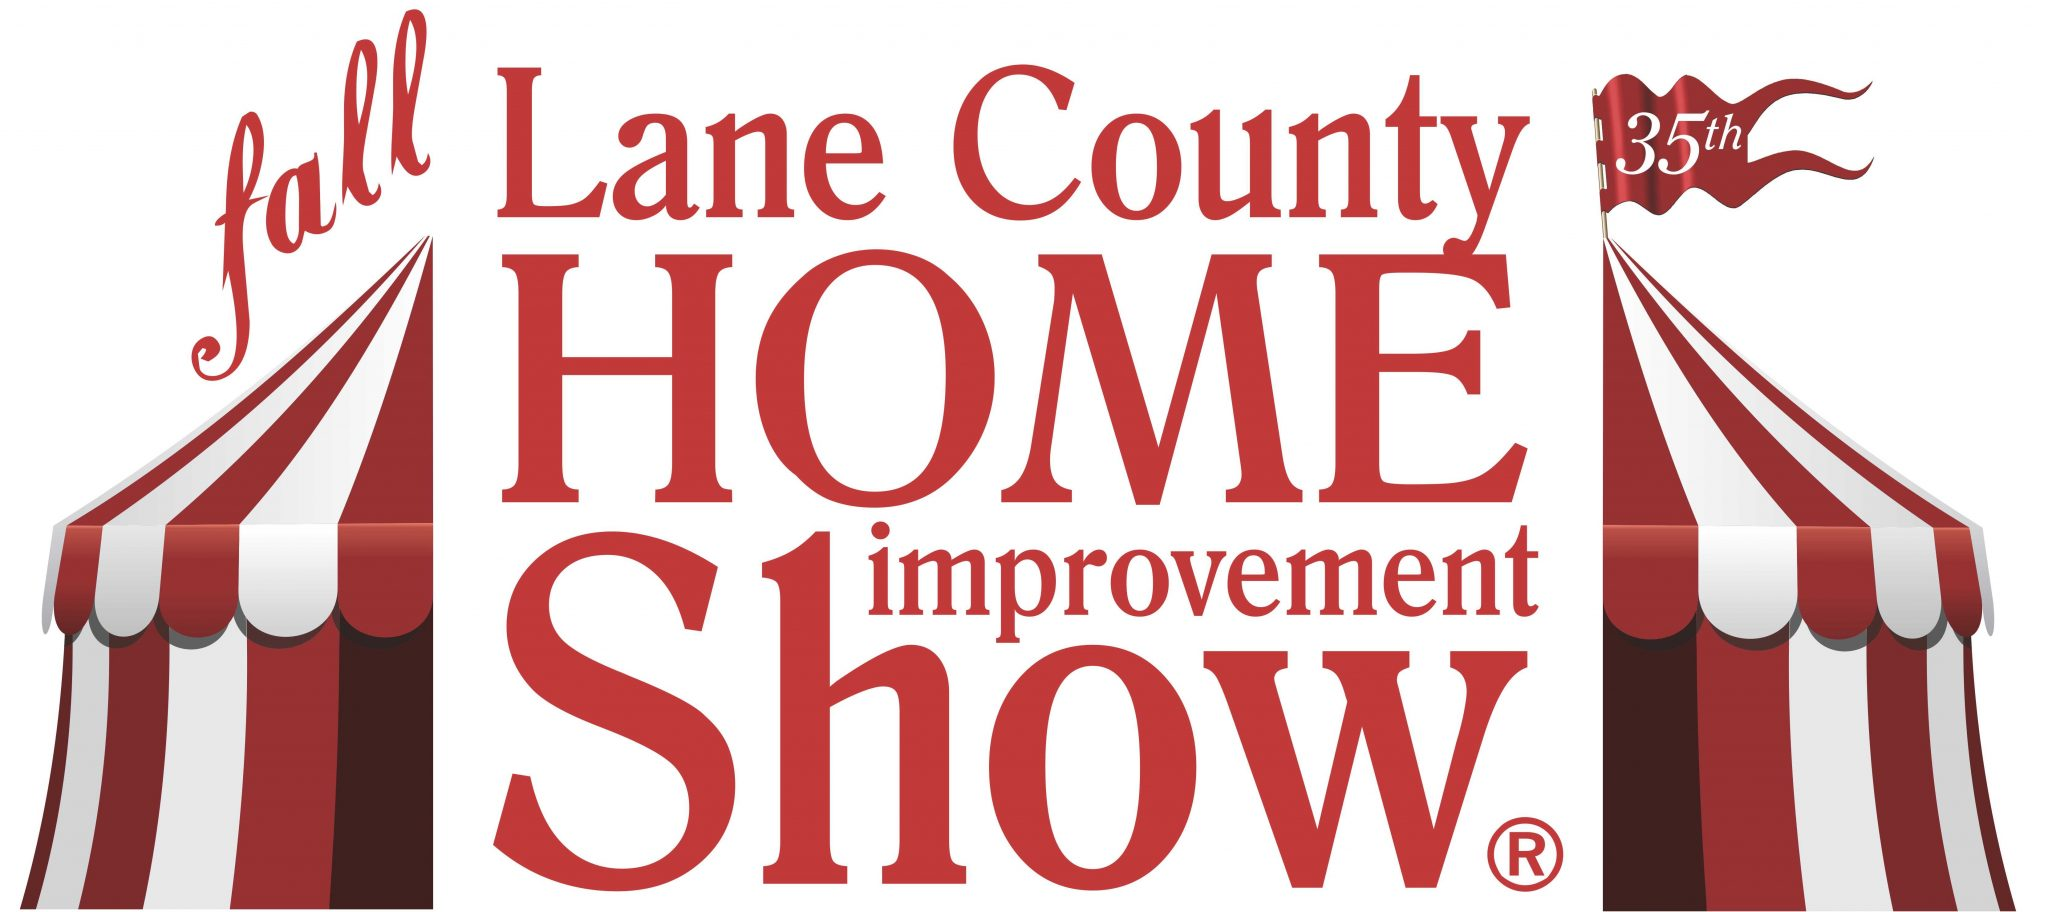 Fall Lane County Home Improvement Show Logo EugeneHomeShow